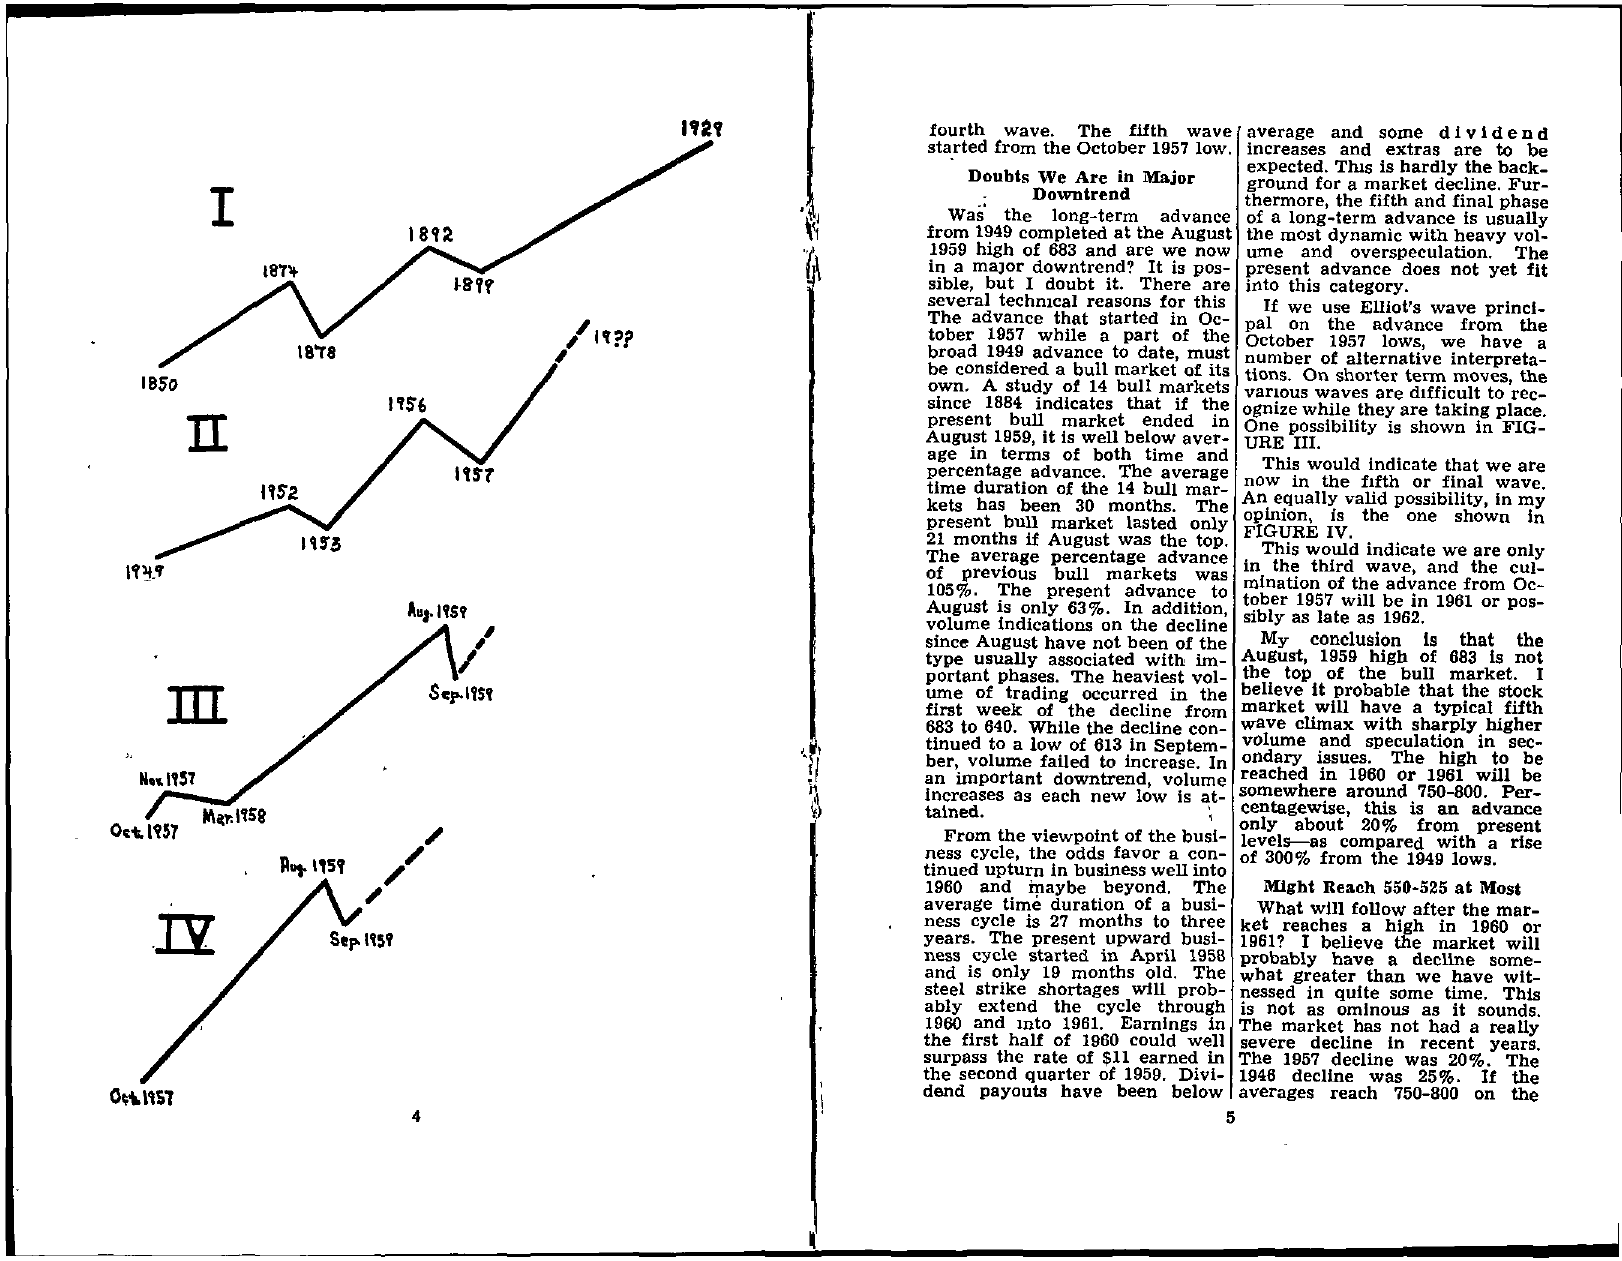 Tabell's Market Letter - November 27, 1959 page 3